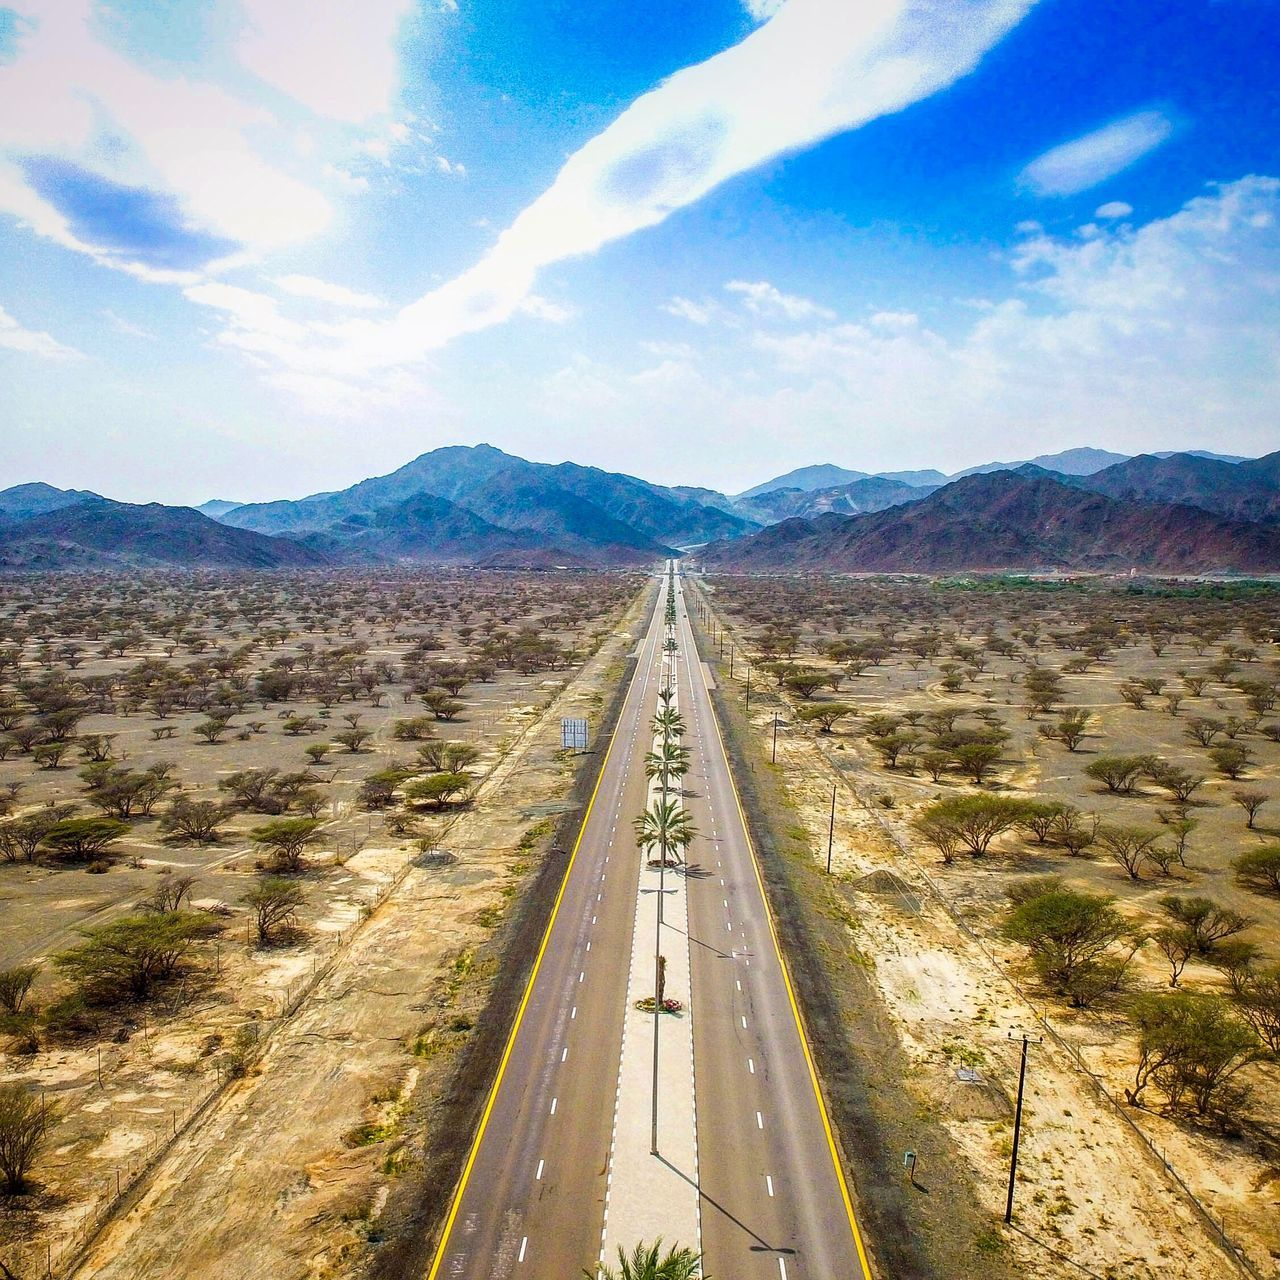 Sky Mountain Landscape Transportation Scenics Day Mountain Range Road Cloud - Sky Non-urban Scene Nature Outdoors Beauty In Nature The Way Forward No People Dronephotography Drone